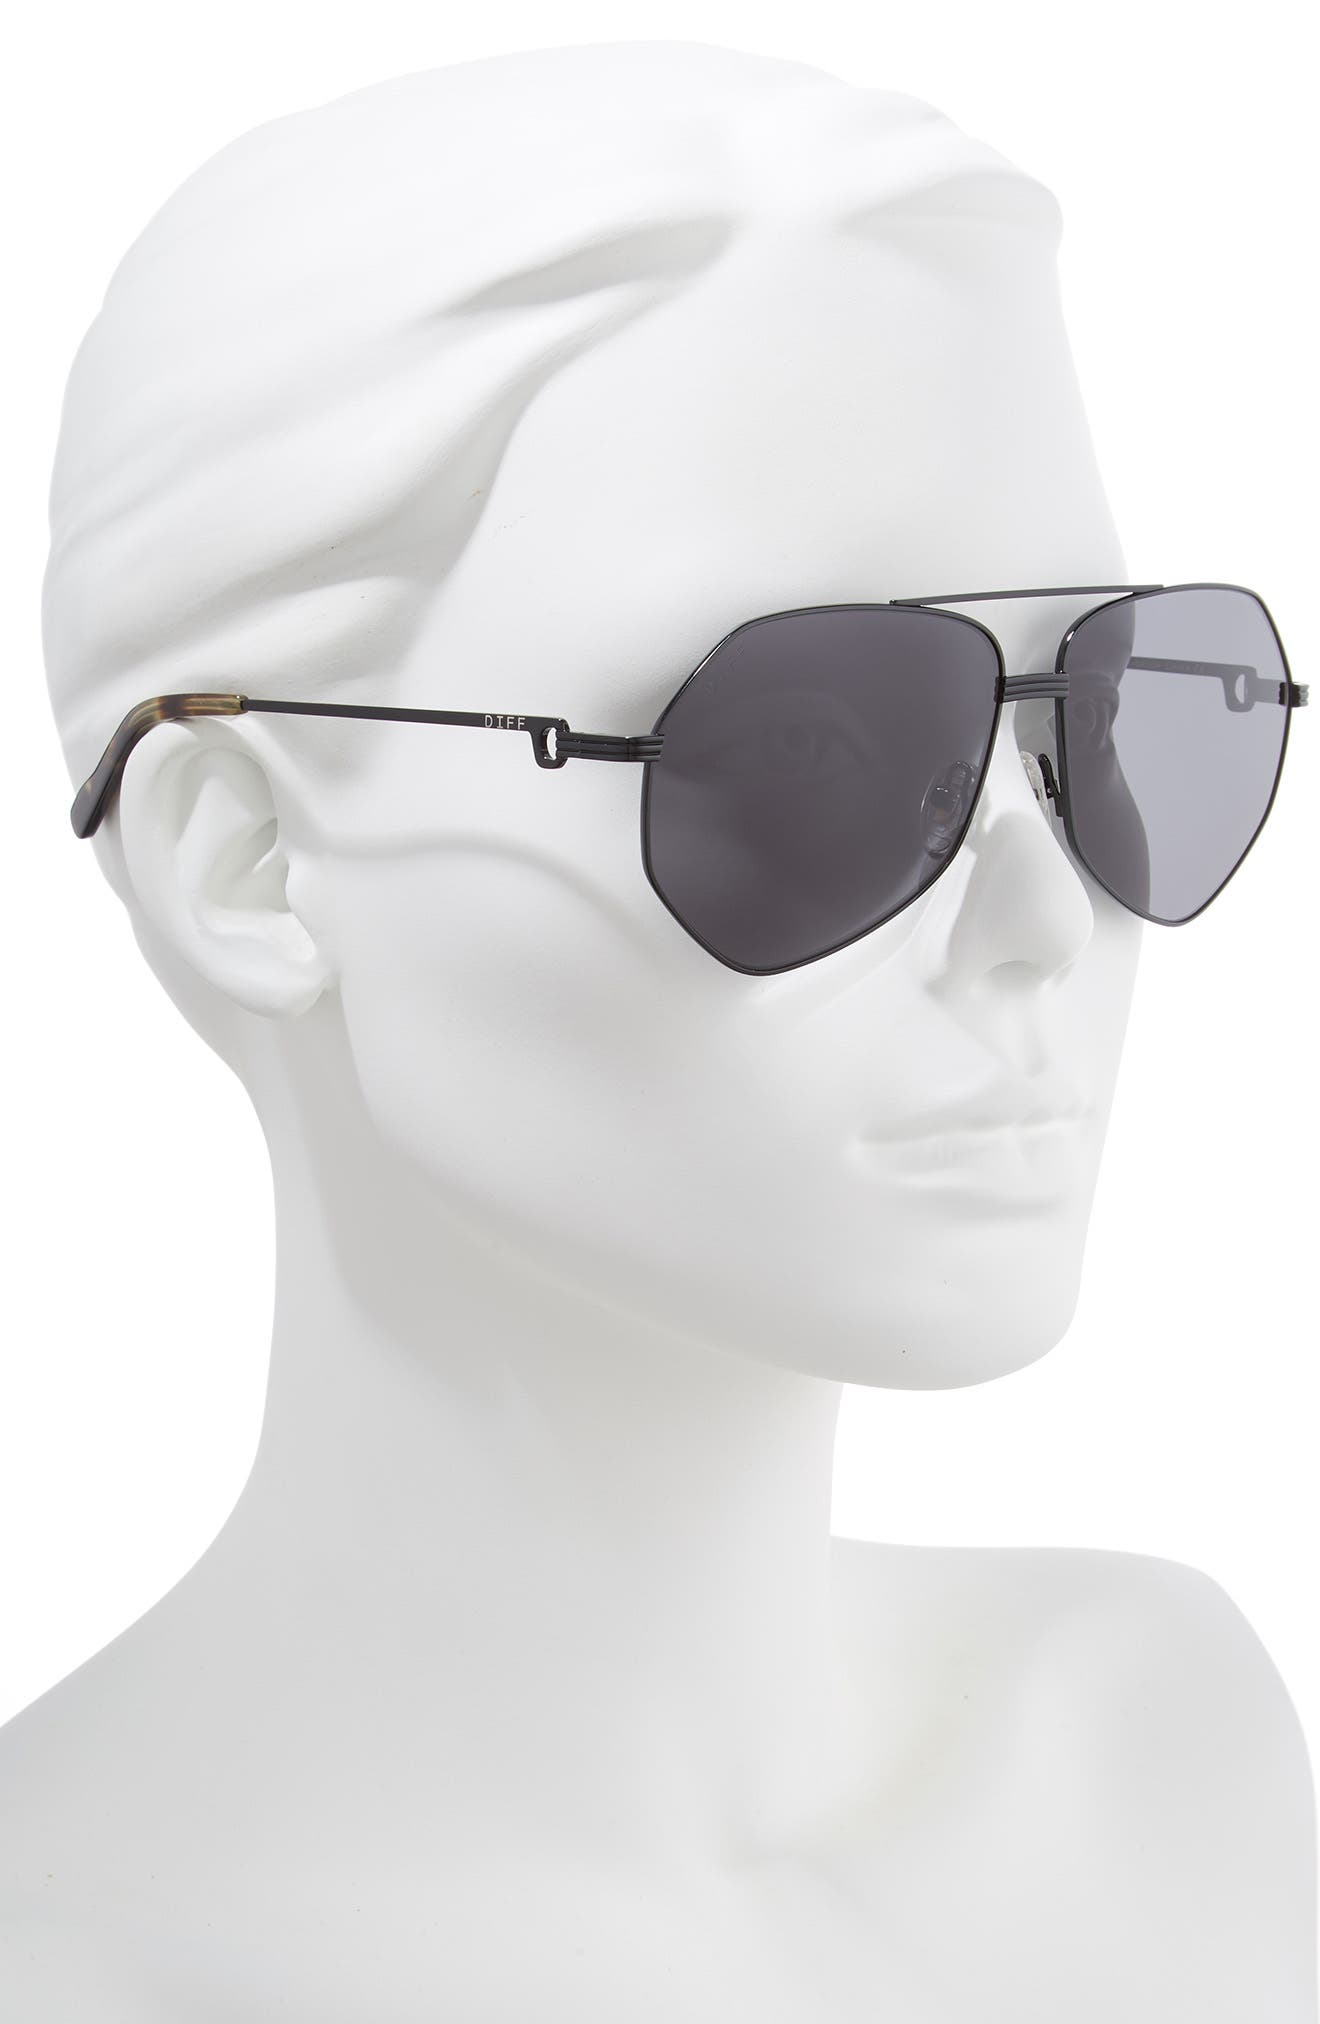 Sydney 62mm Polarized Aviator Sunglasses,                             Alternate thumbnail 2, color,                             BLACK/ MOSS HAVANA/ GREY